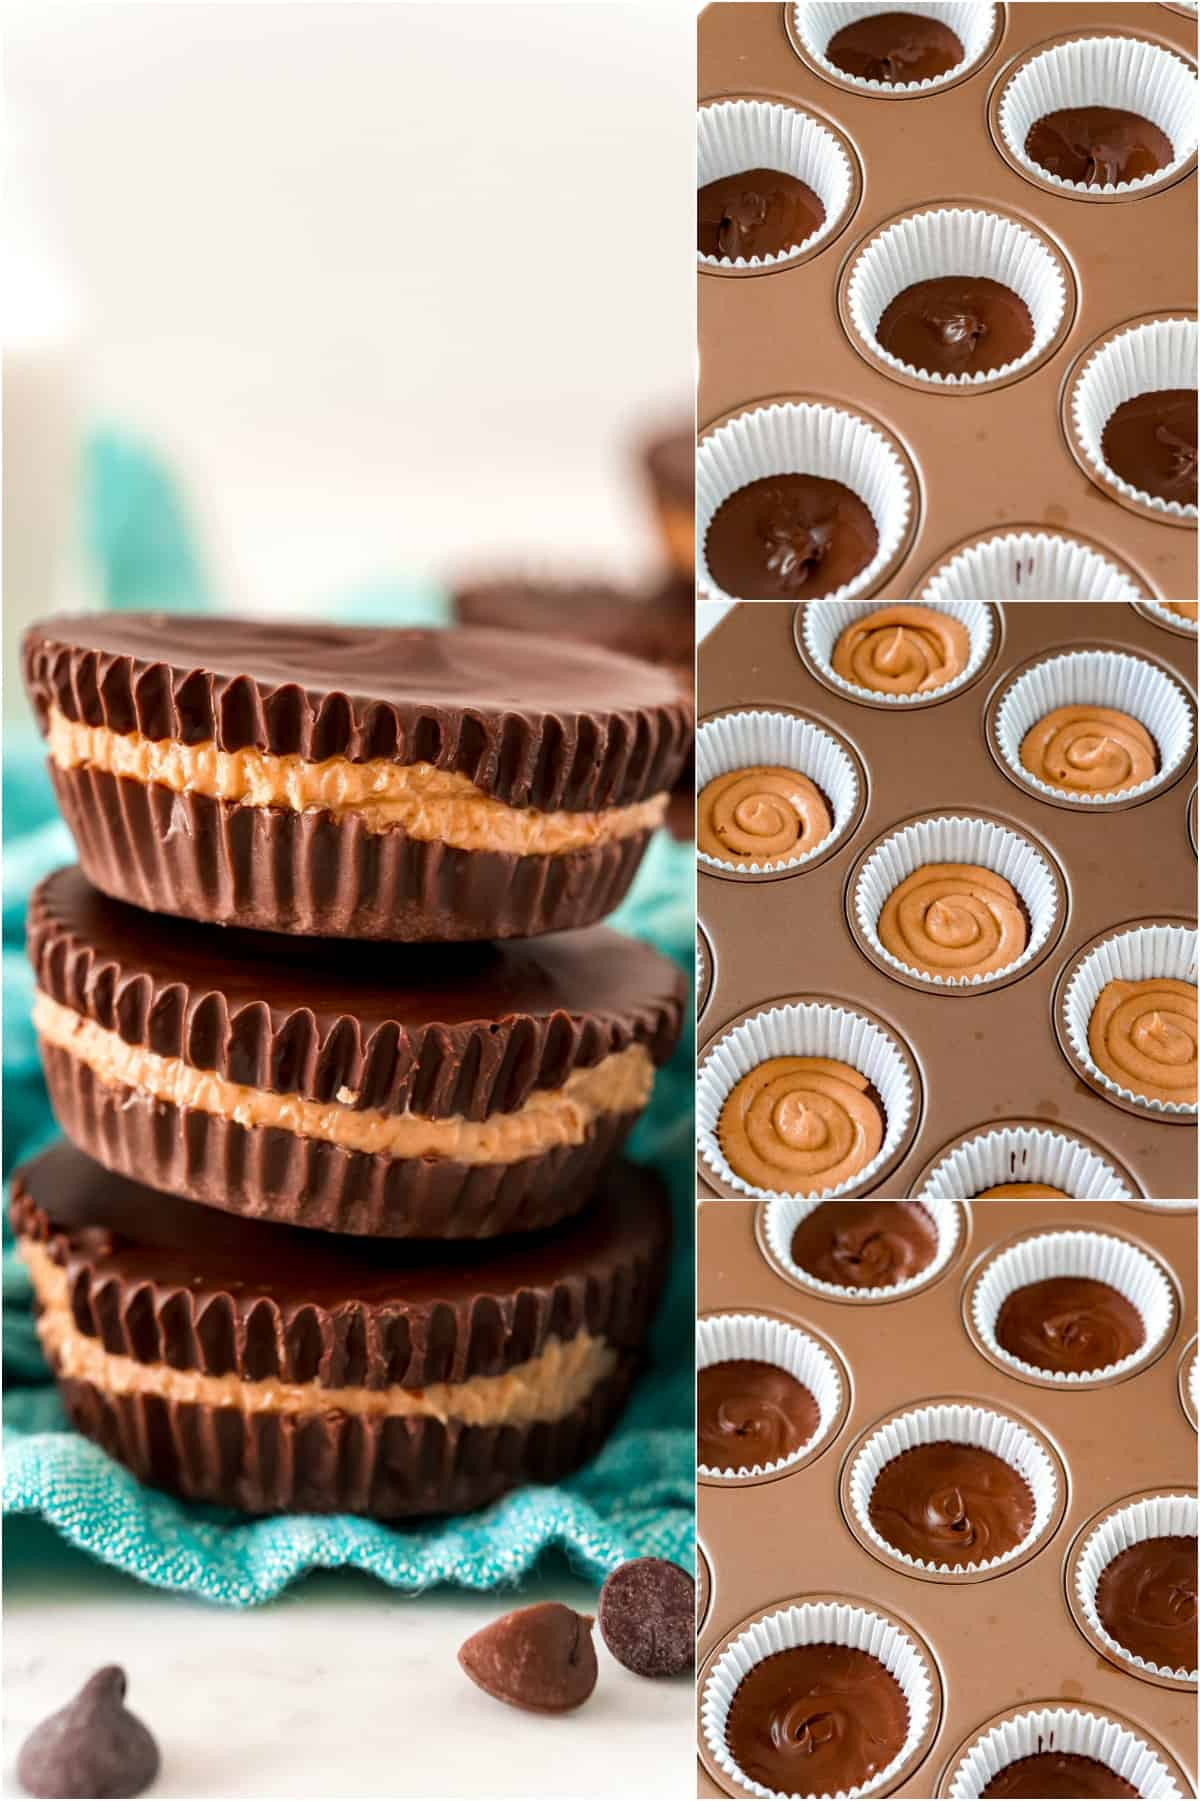 Step by step photos showing how to make reeses peanut butter cups.